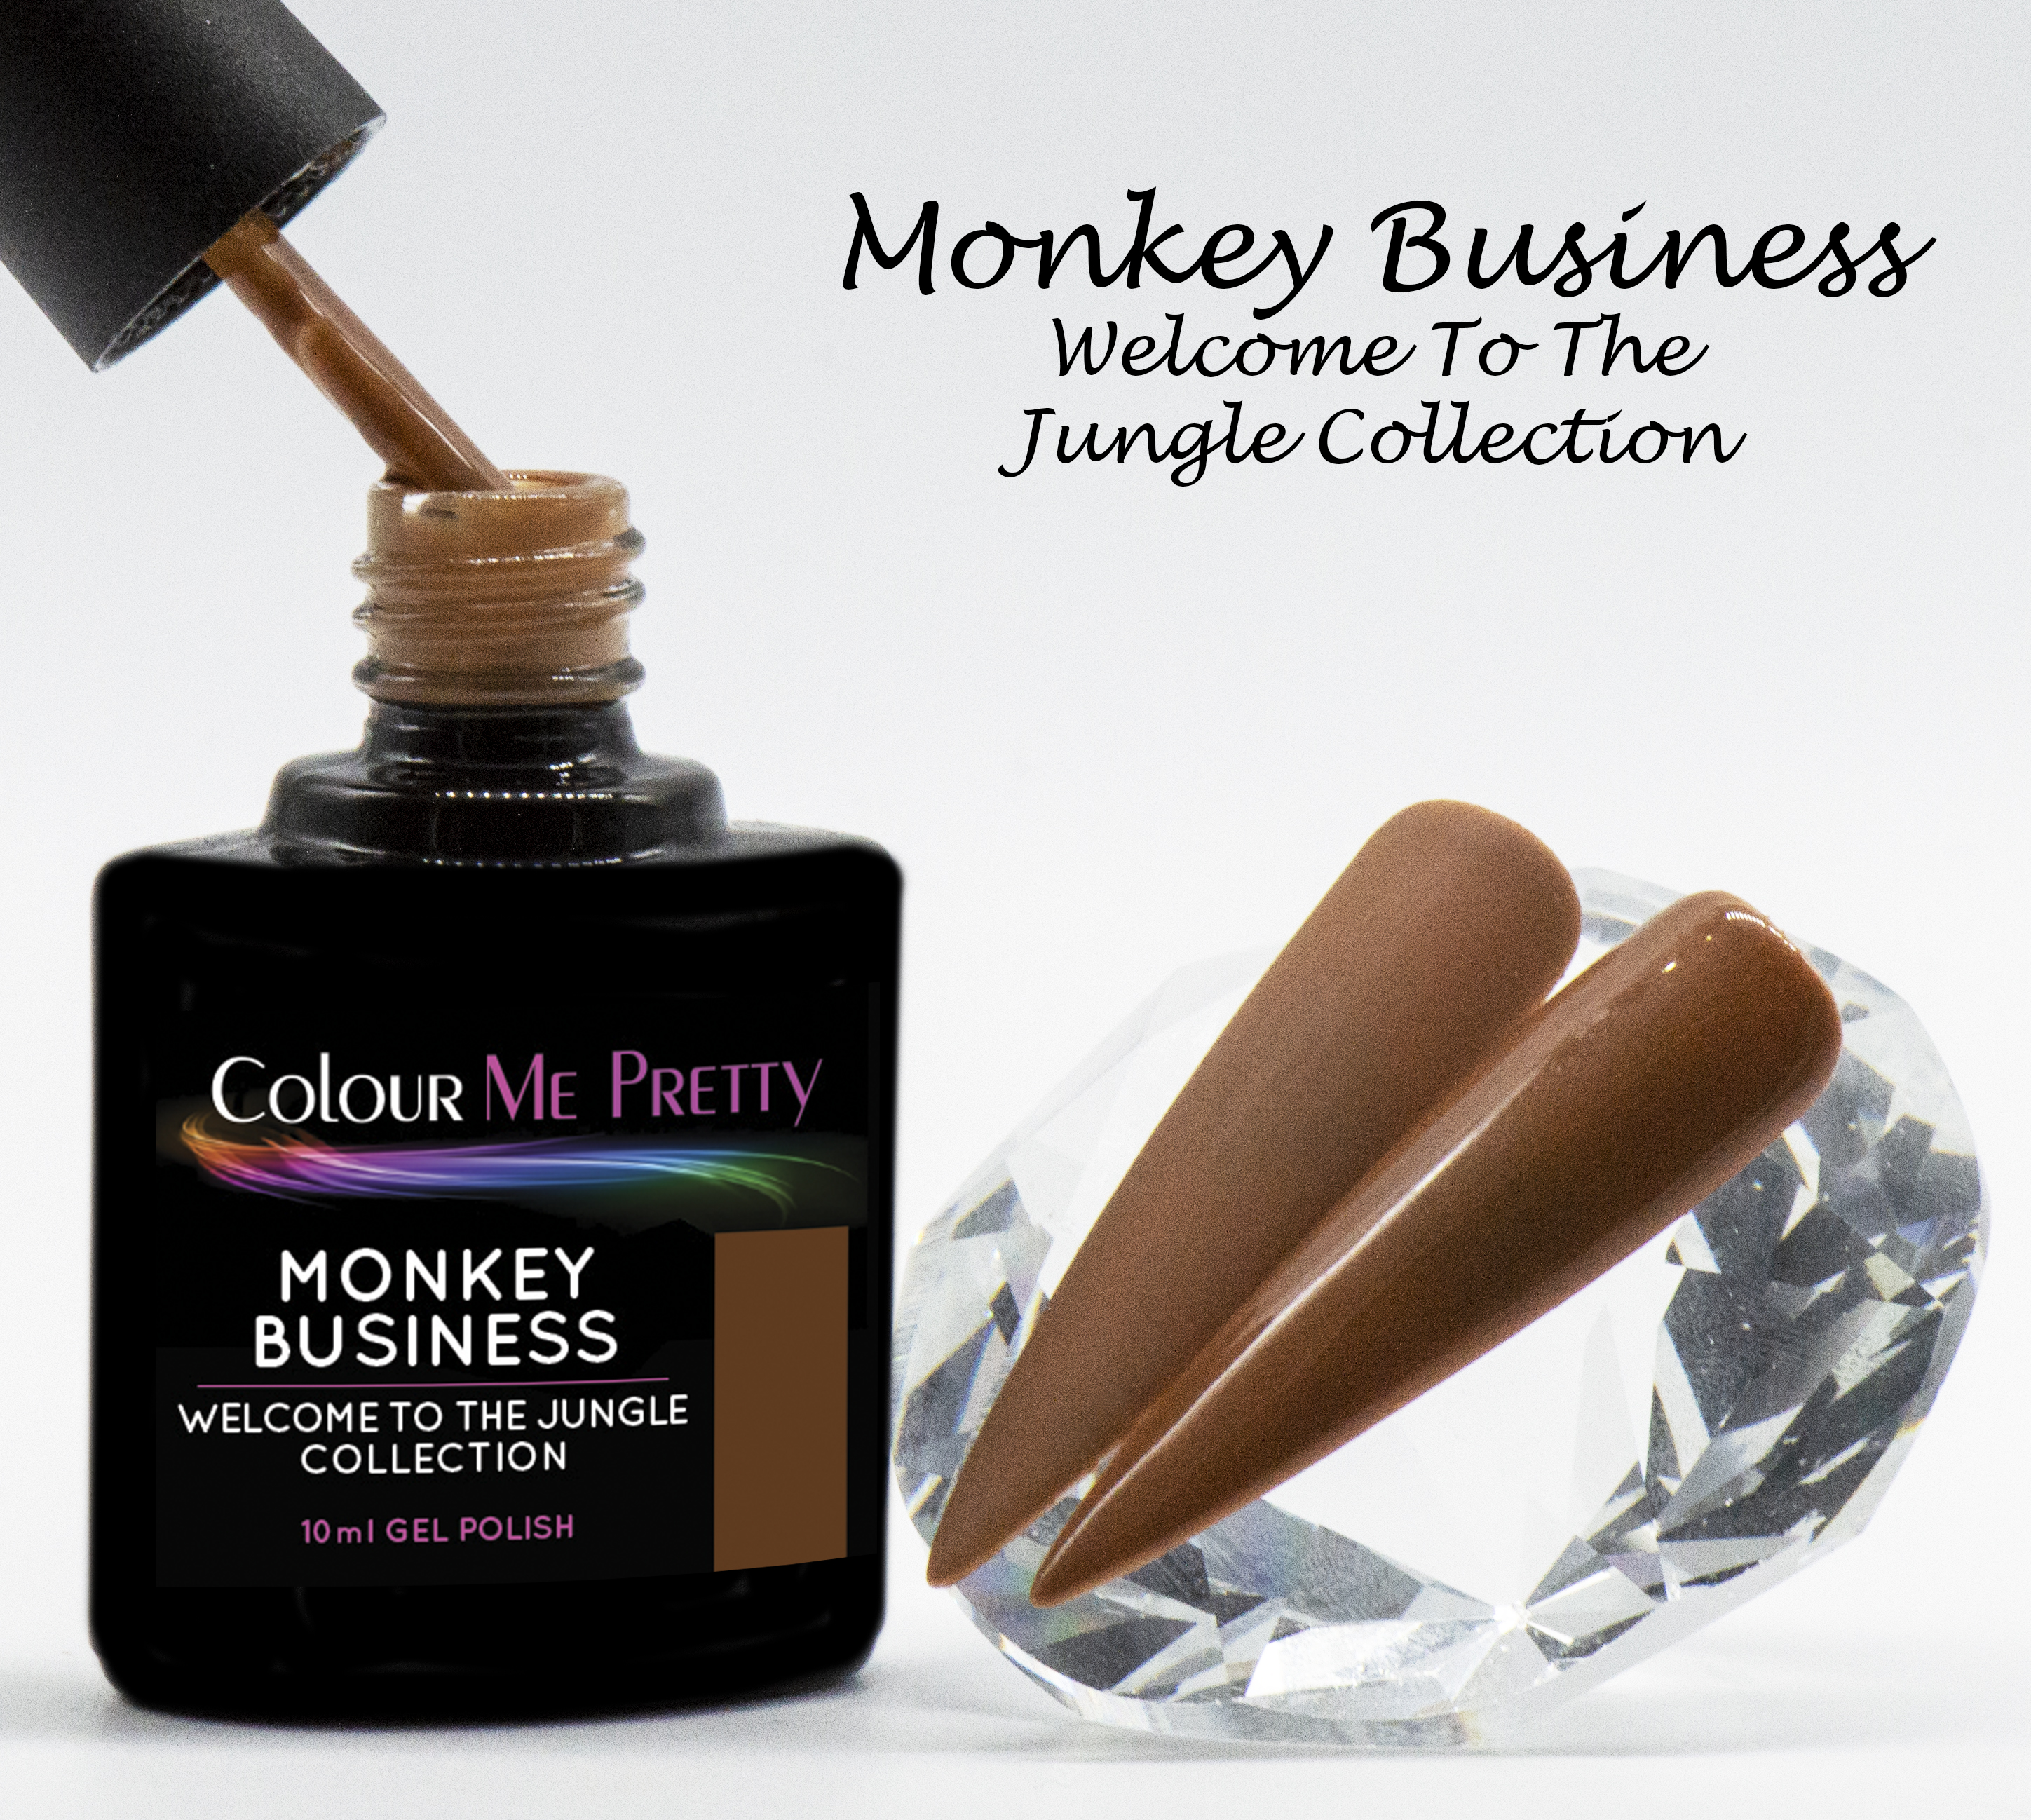 Welcome Monkey Business